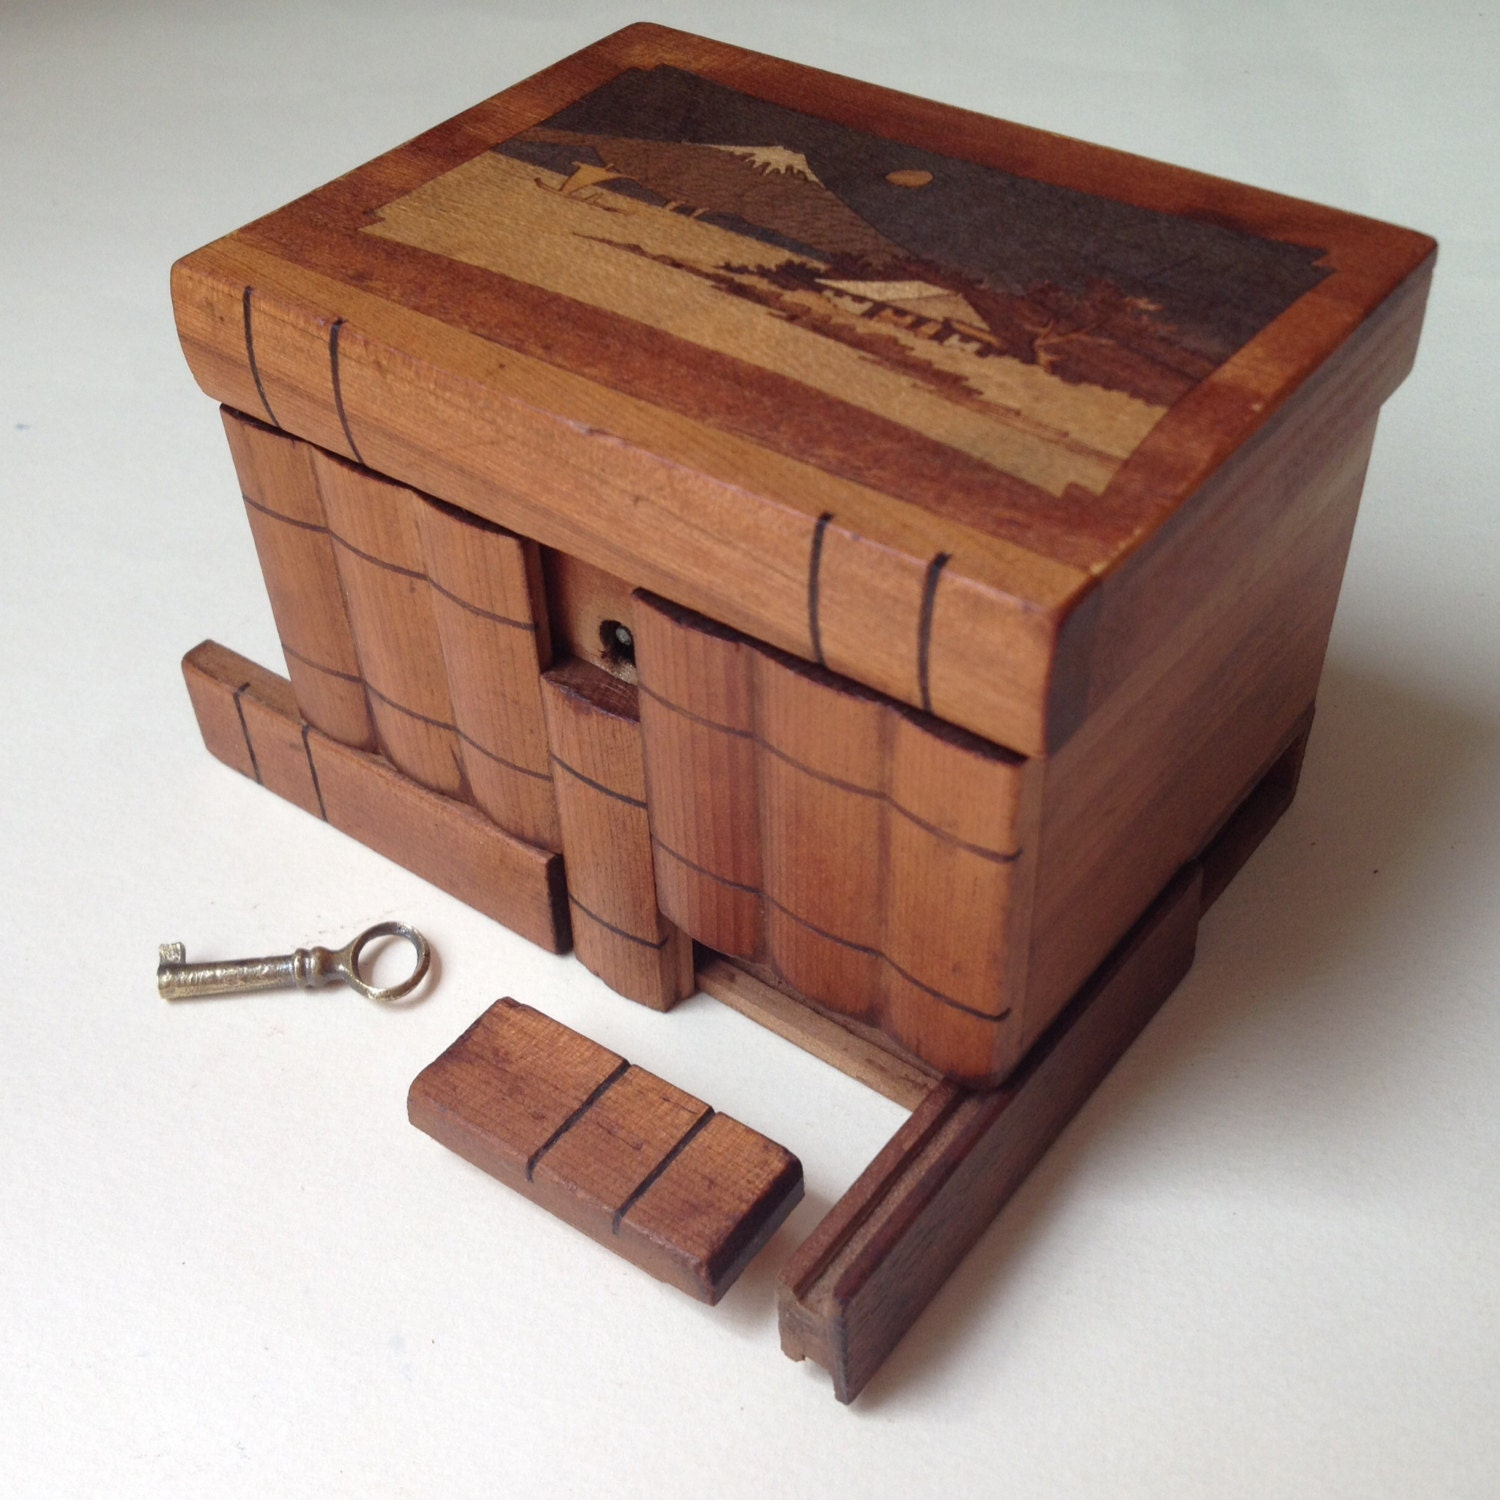 Japanese Secret Puzzle Box Wooden Wiring Diagrams Circuit Board Maker Of Shenzhen Qld20 Qld China Boxes Lookup Beforebuying Engaved Lock